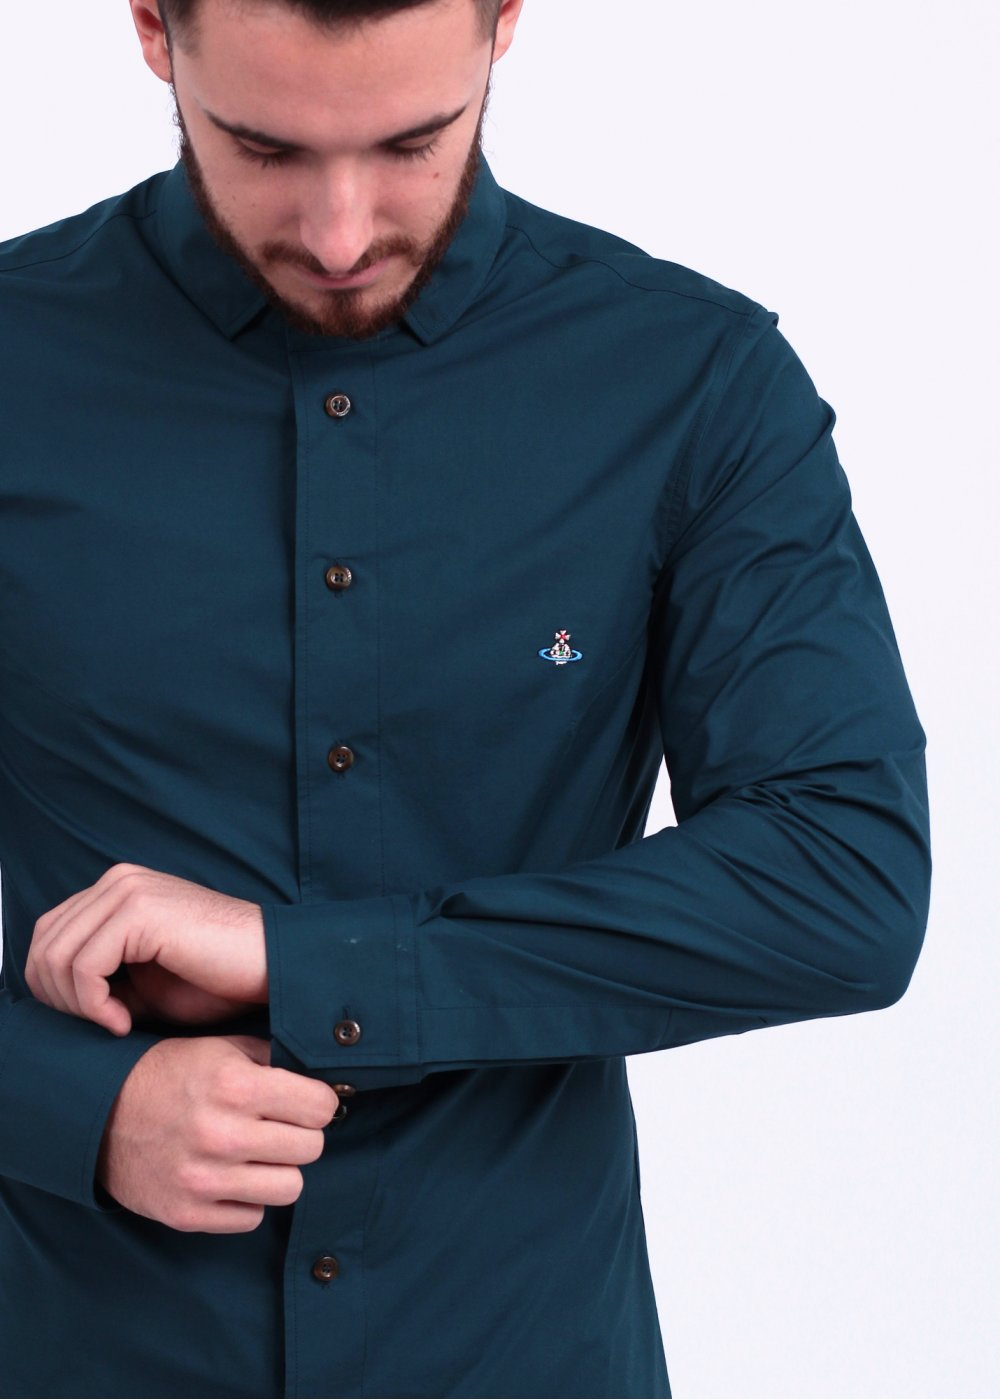 Vivienne Westwood 3 Button Shirt - Teal